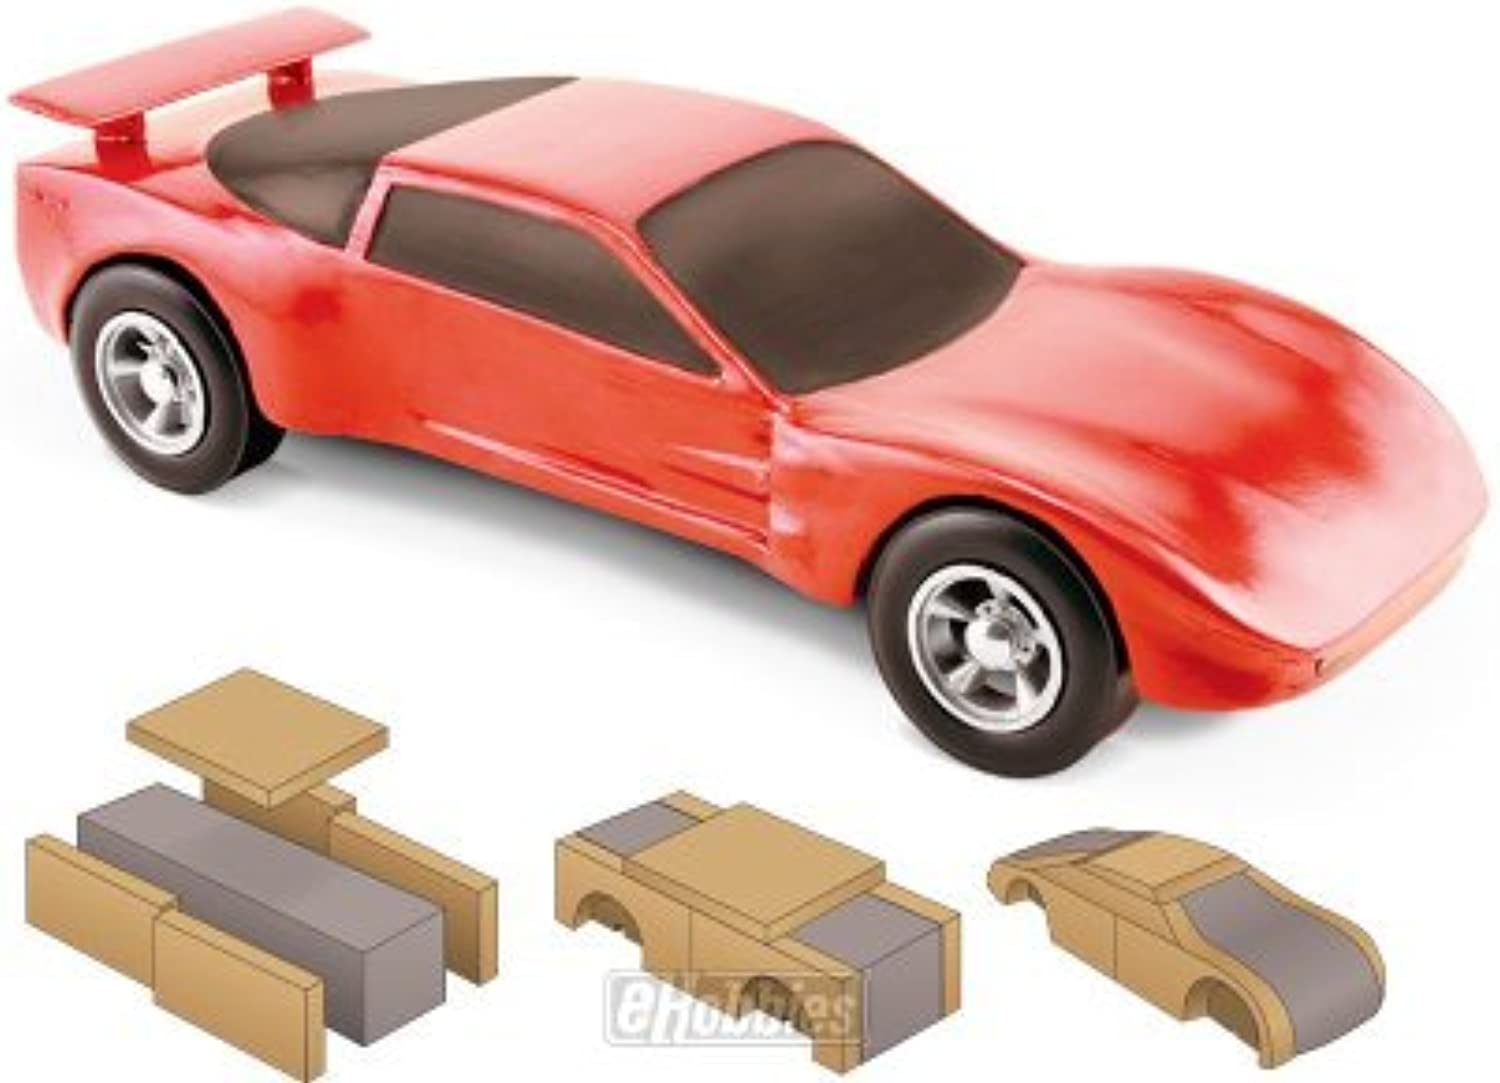 Pine Car Body Builder Kit Pinewood Derby by Pinecar